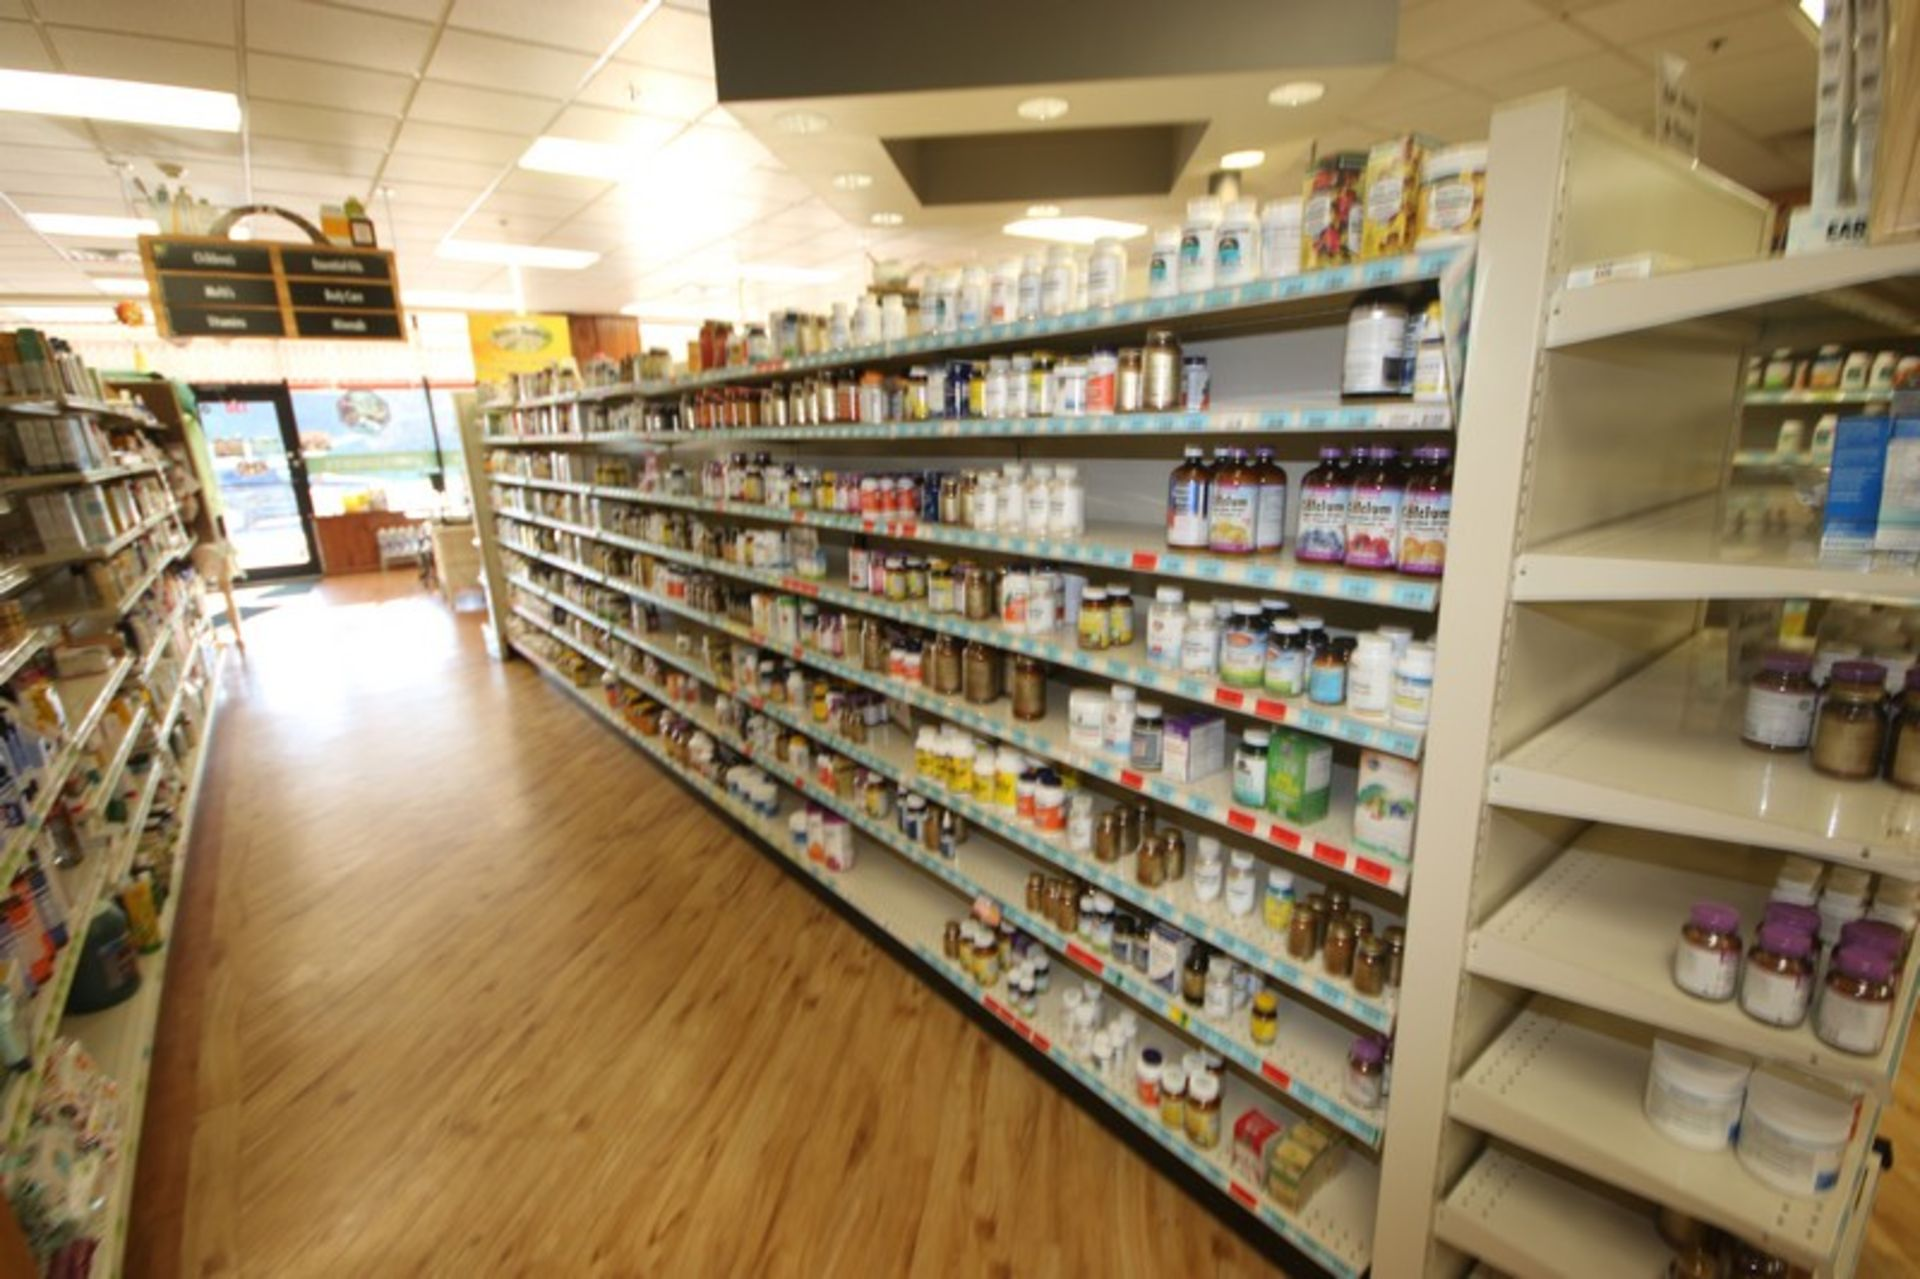 Feet of Double Sided Super Market Shelving, with Shelves (NOTE: SOLD BY THE FOOT) (Located in - Image 3 of 4